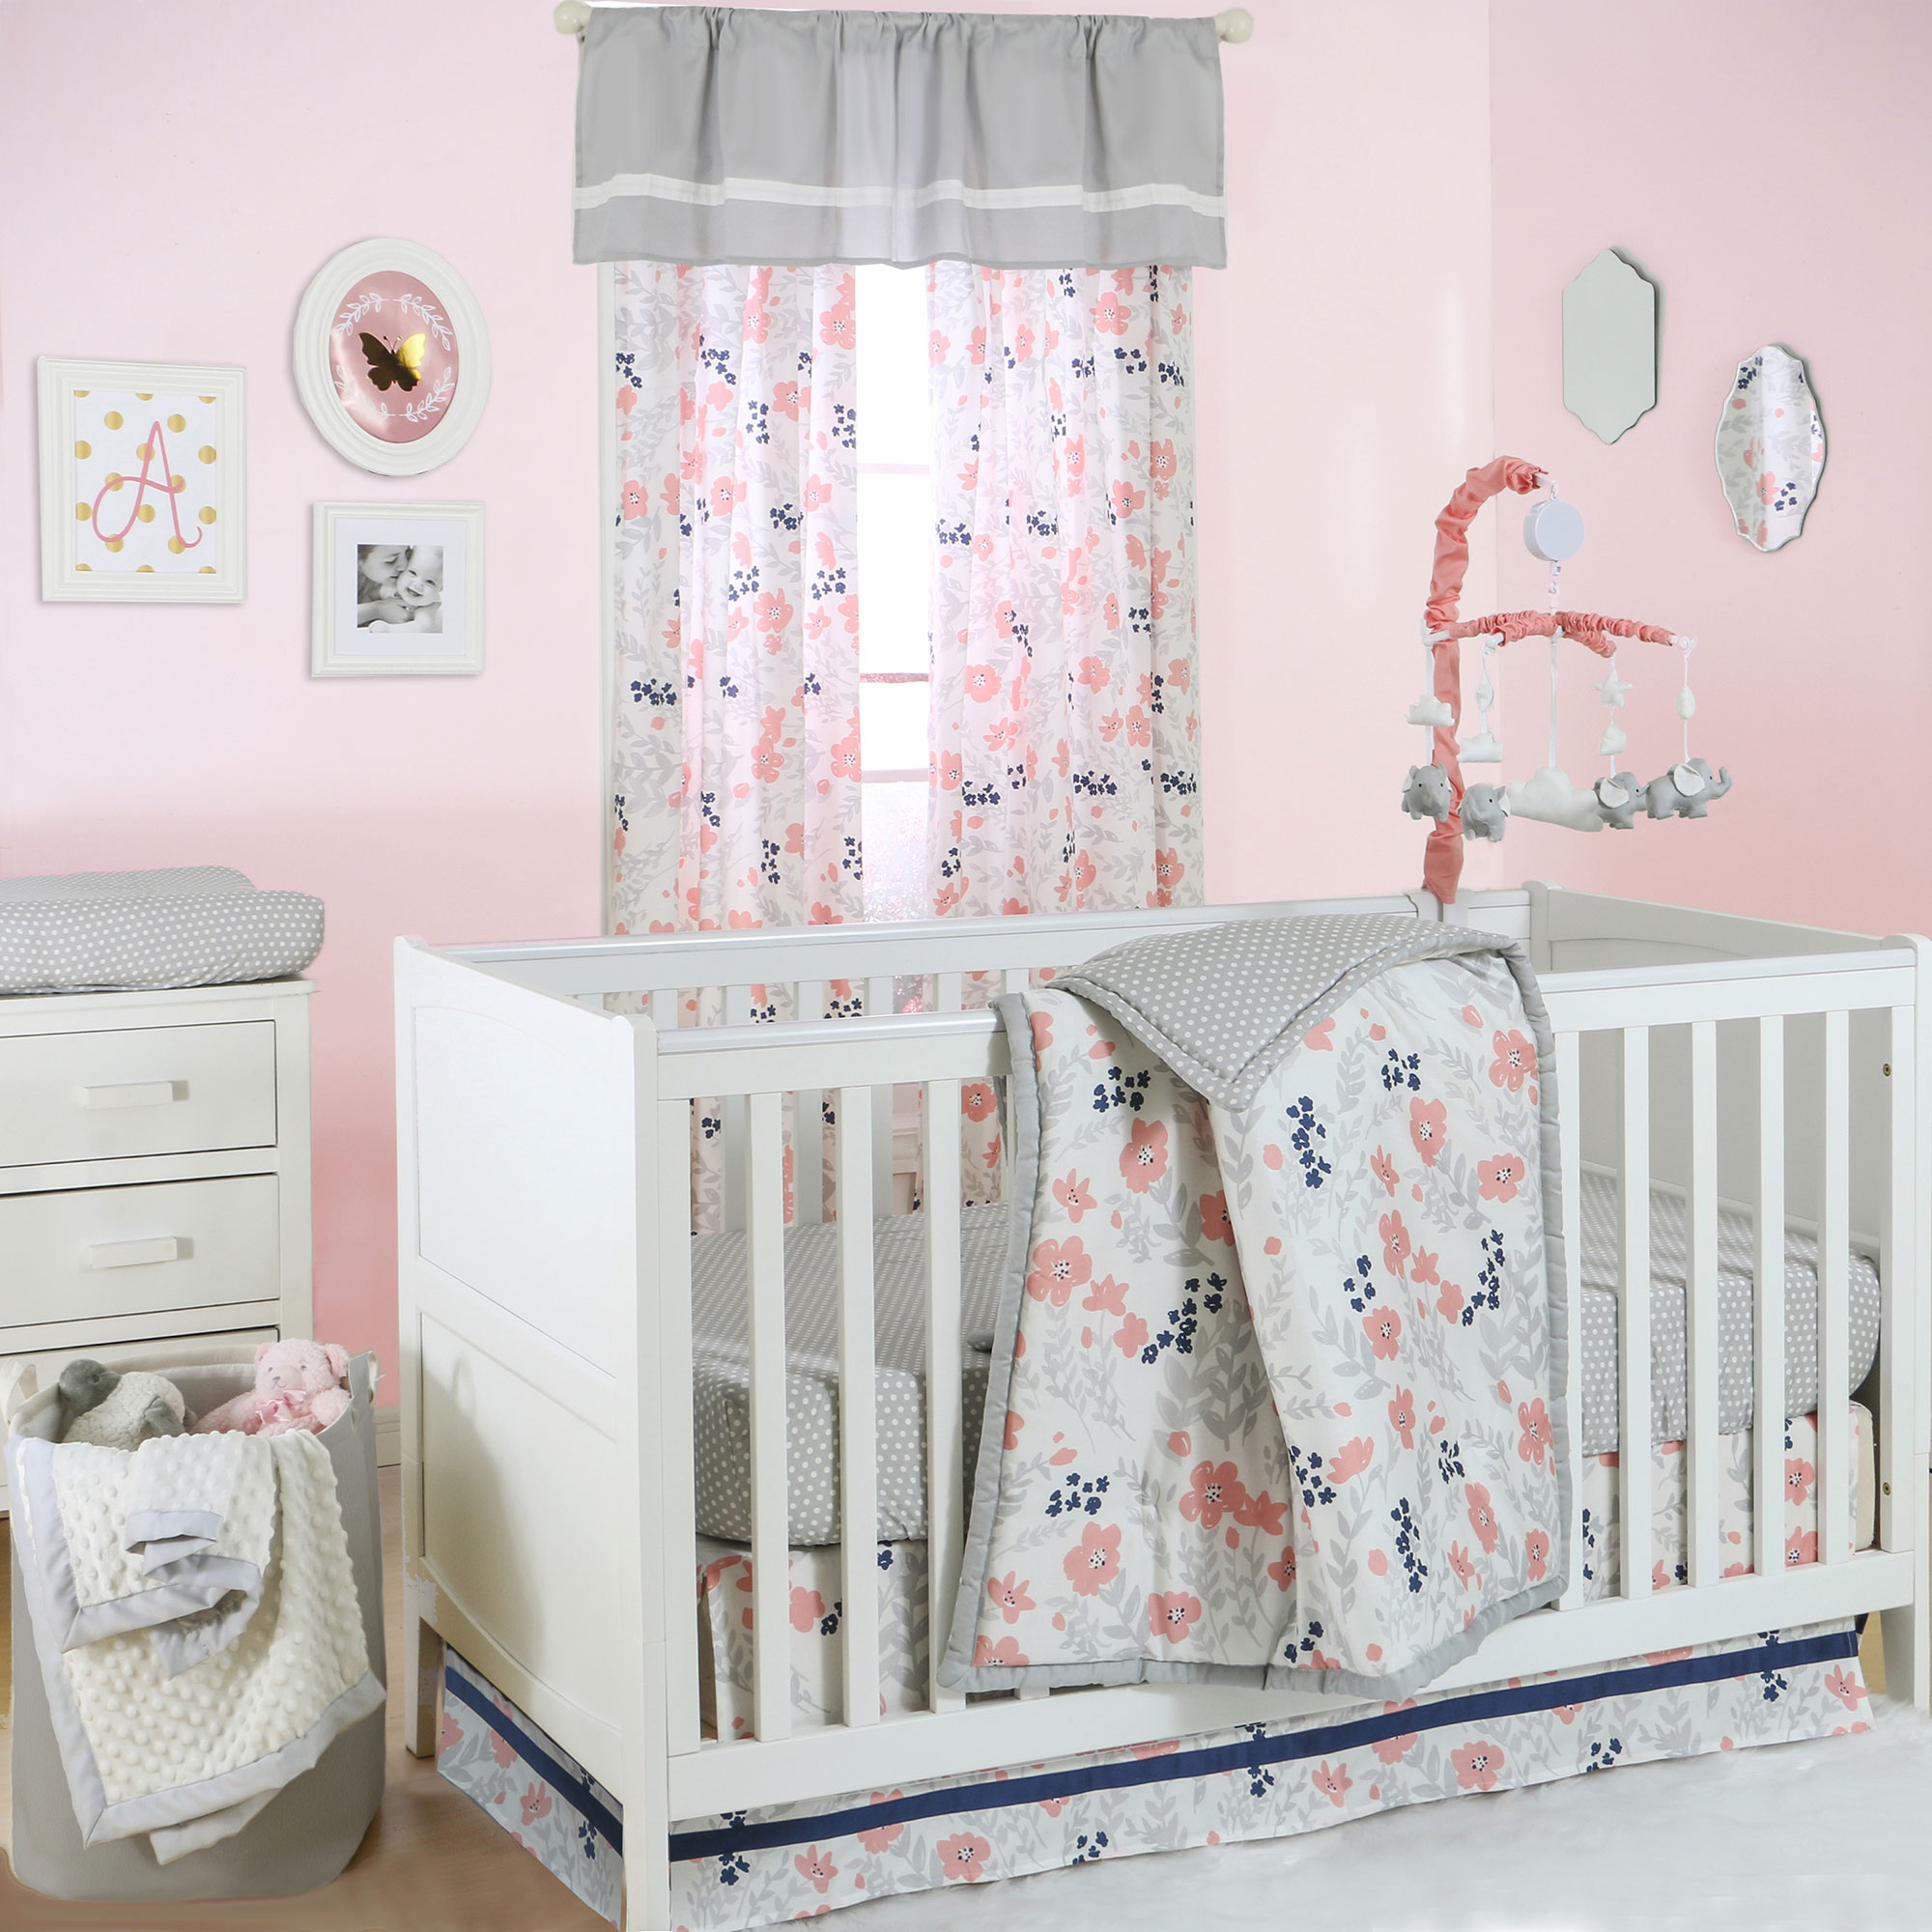 The Peanut Shell 4 Piece Baby Crib Bedding Set - Coral, Navy Blue, and Grey Floral with Grey Dots - 100% Cotton Quilt, Dust Ruffle, Fitted Sheet, and Mobile